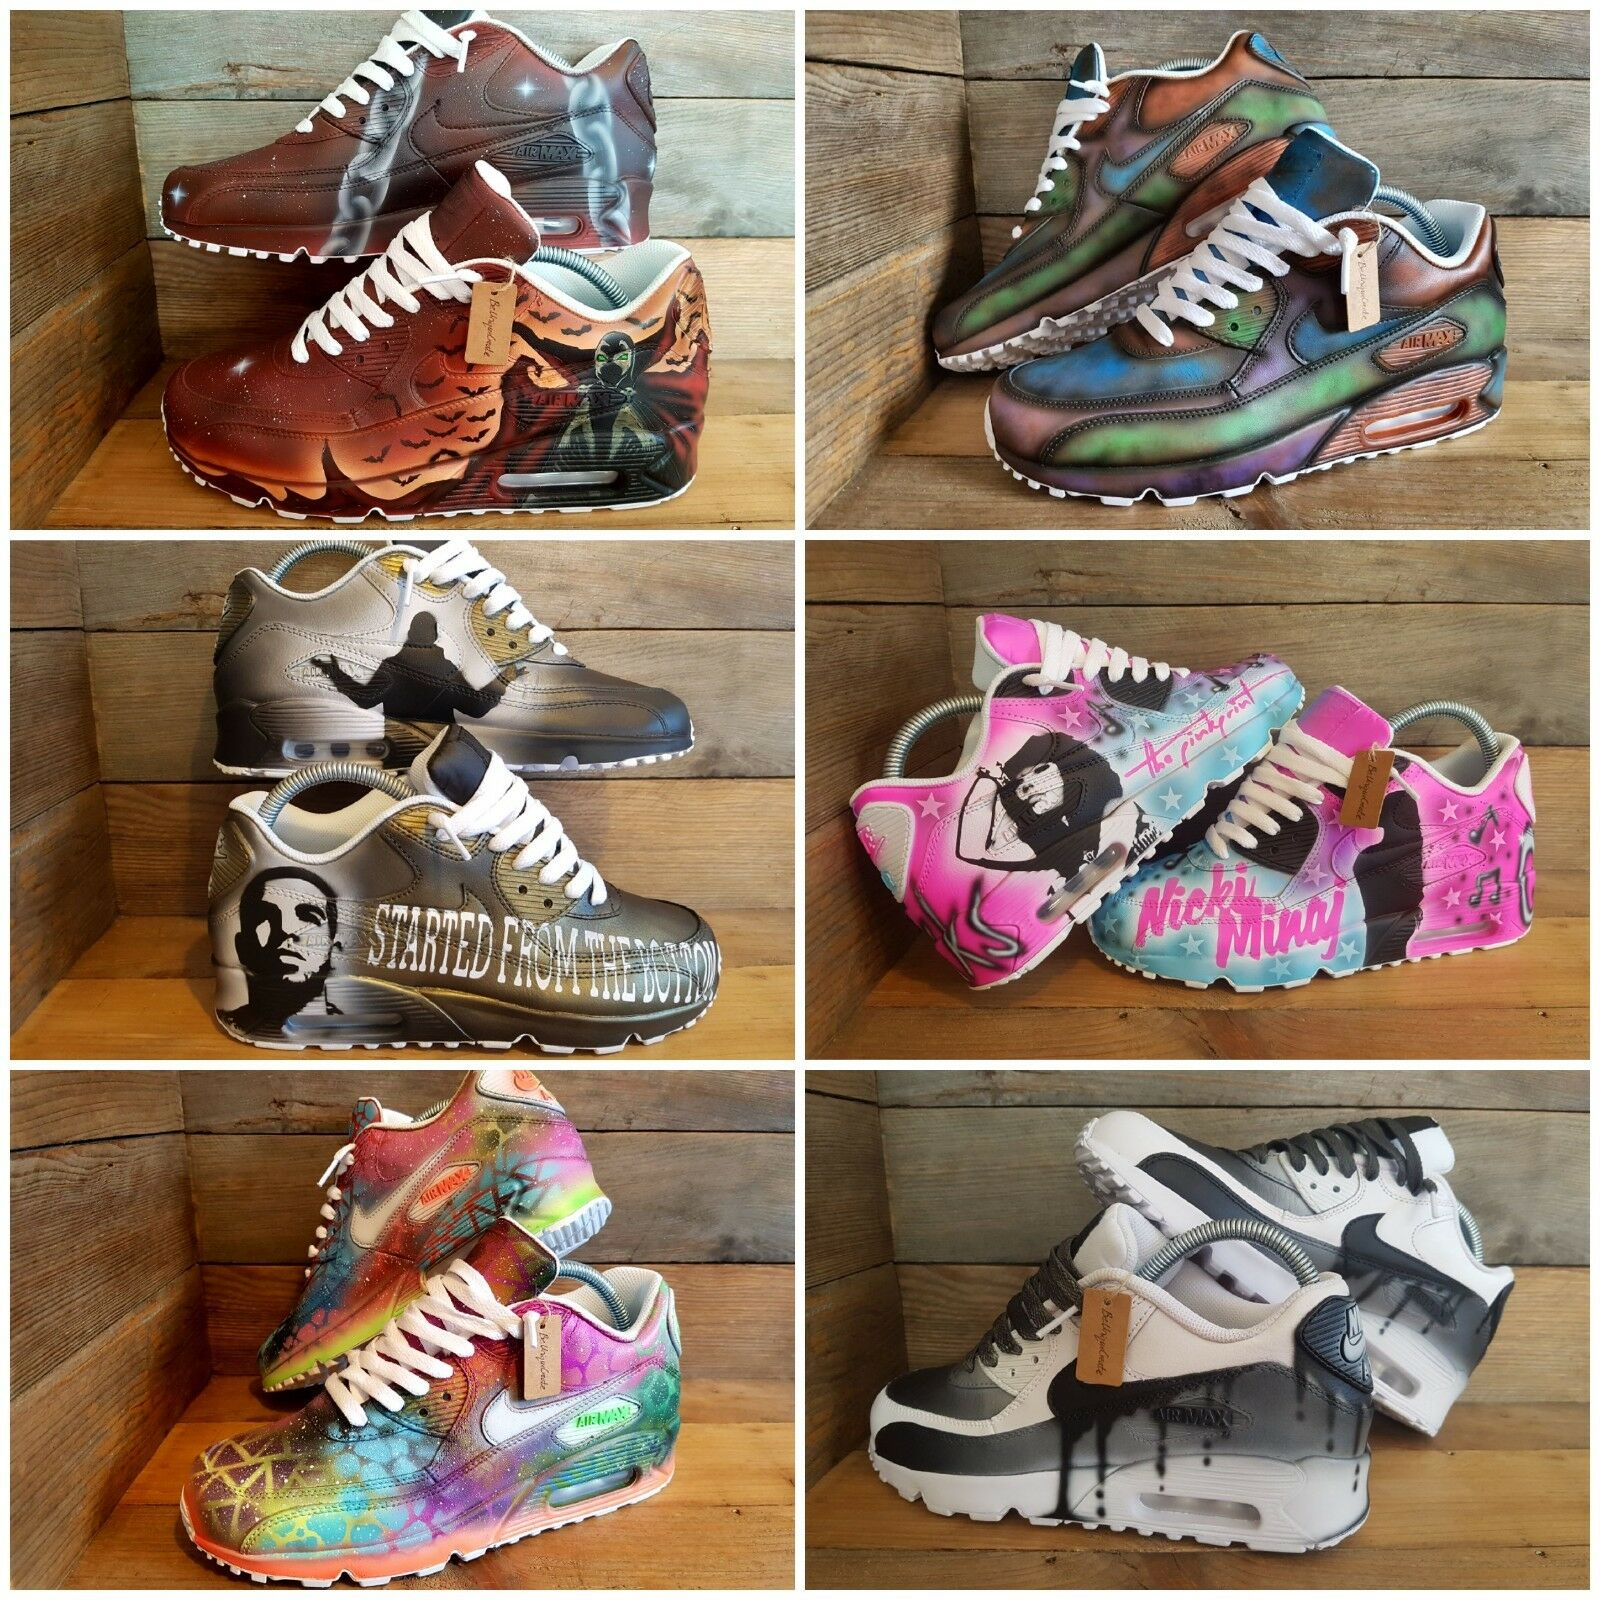 Nike Nike Nike Air Max 90/Custom Painted/Rose/Bleu/blanc/noir/Girls/Femme/Mens/Trainers 2d126b